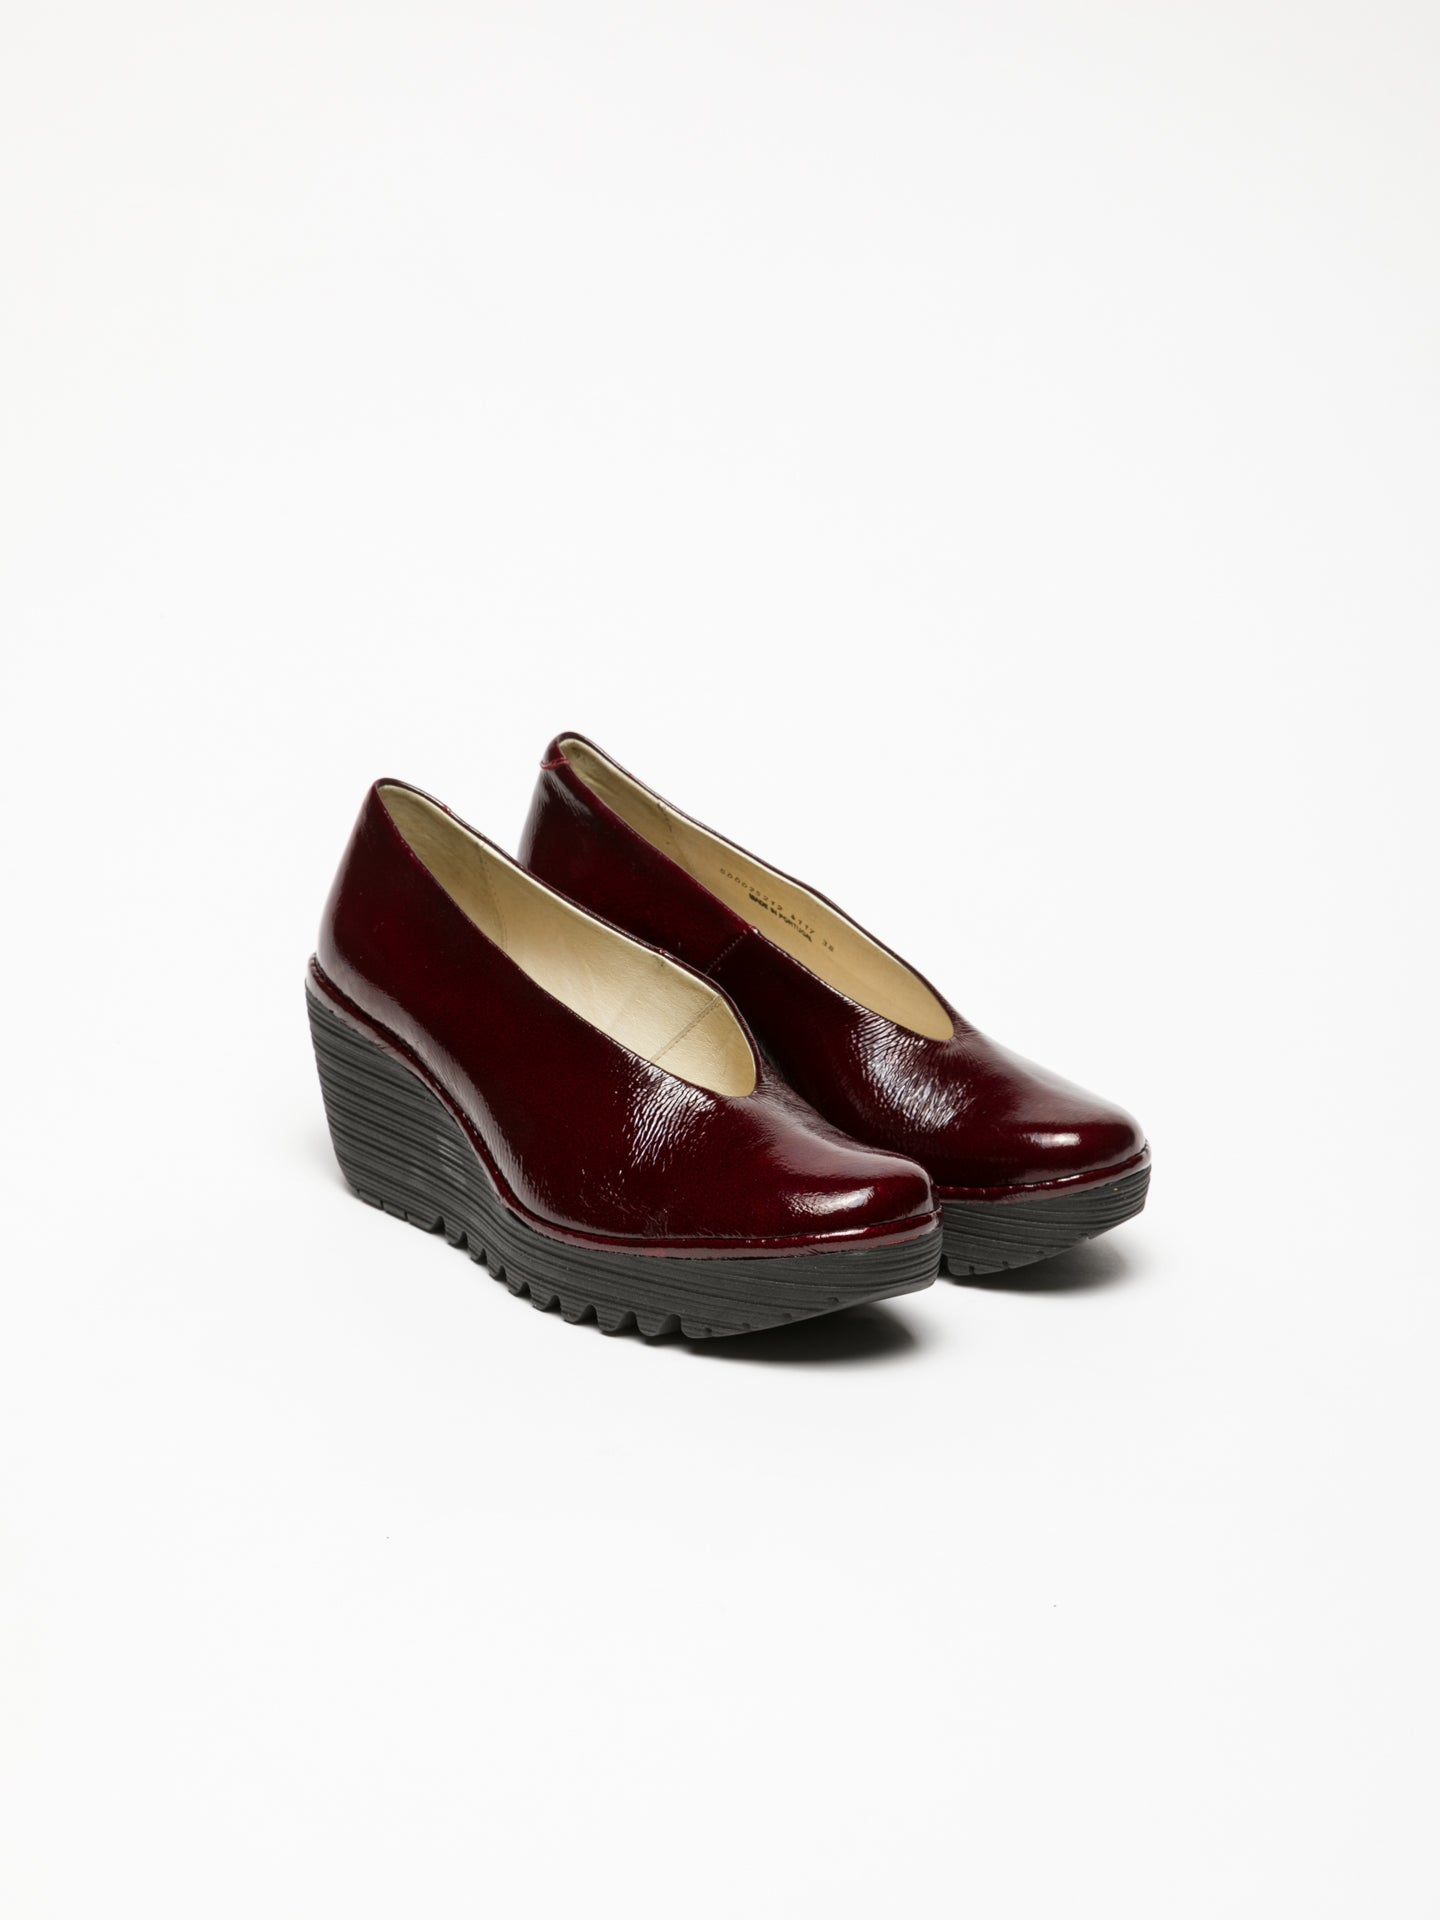 Fly London DarkRed Wedge Shoes